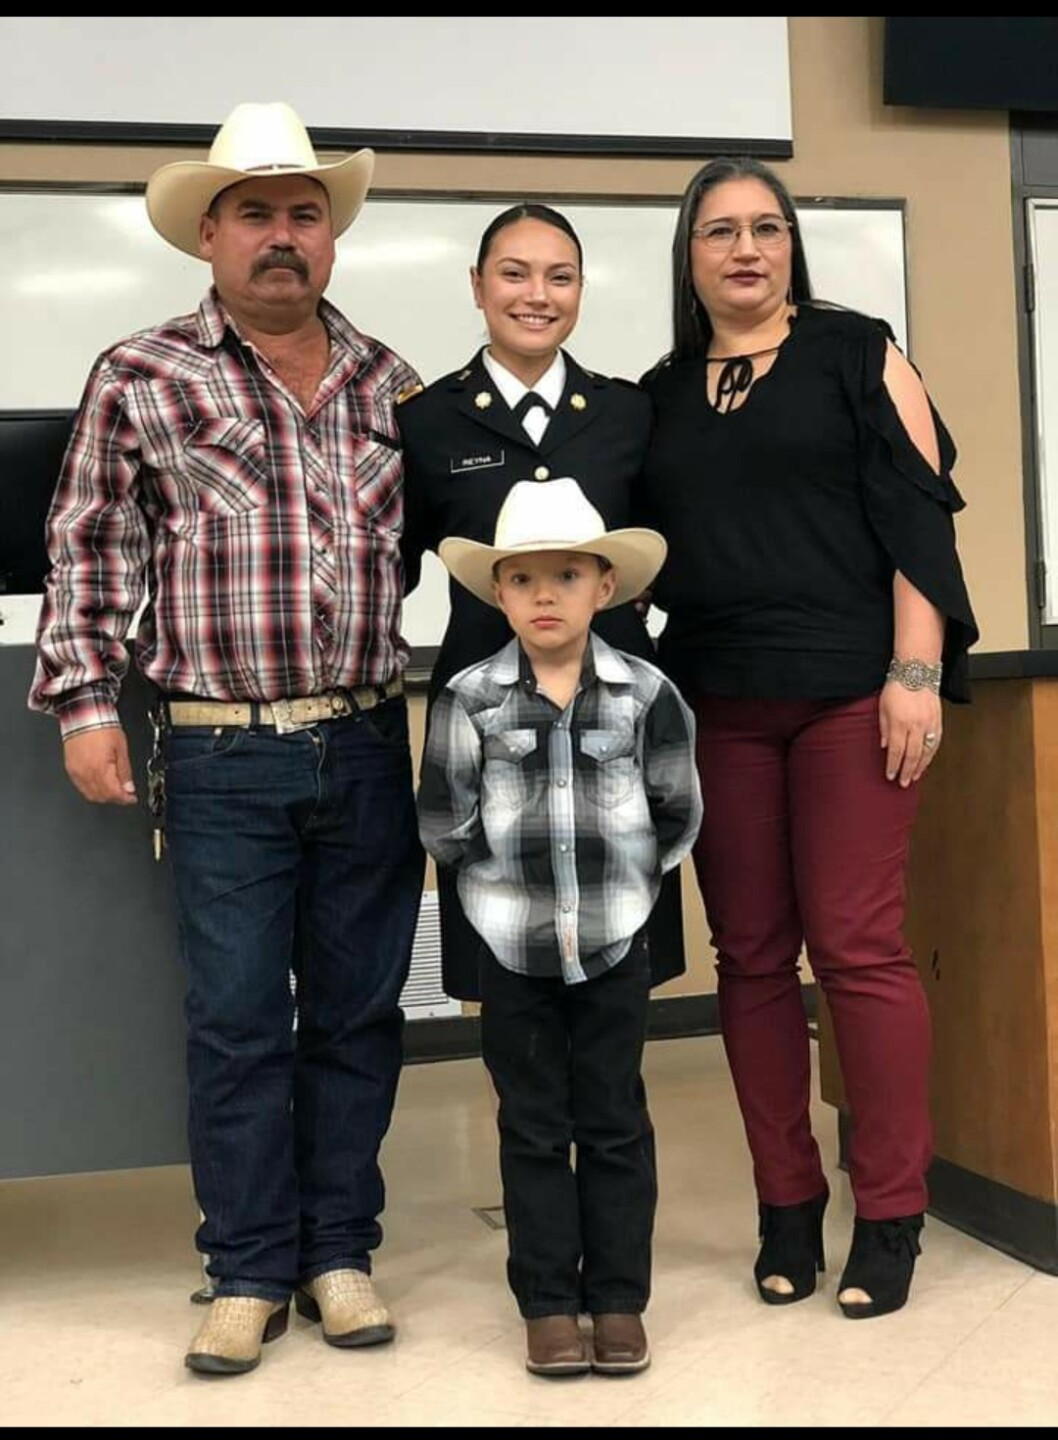 Lt. Reyna And Family